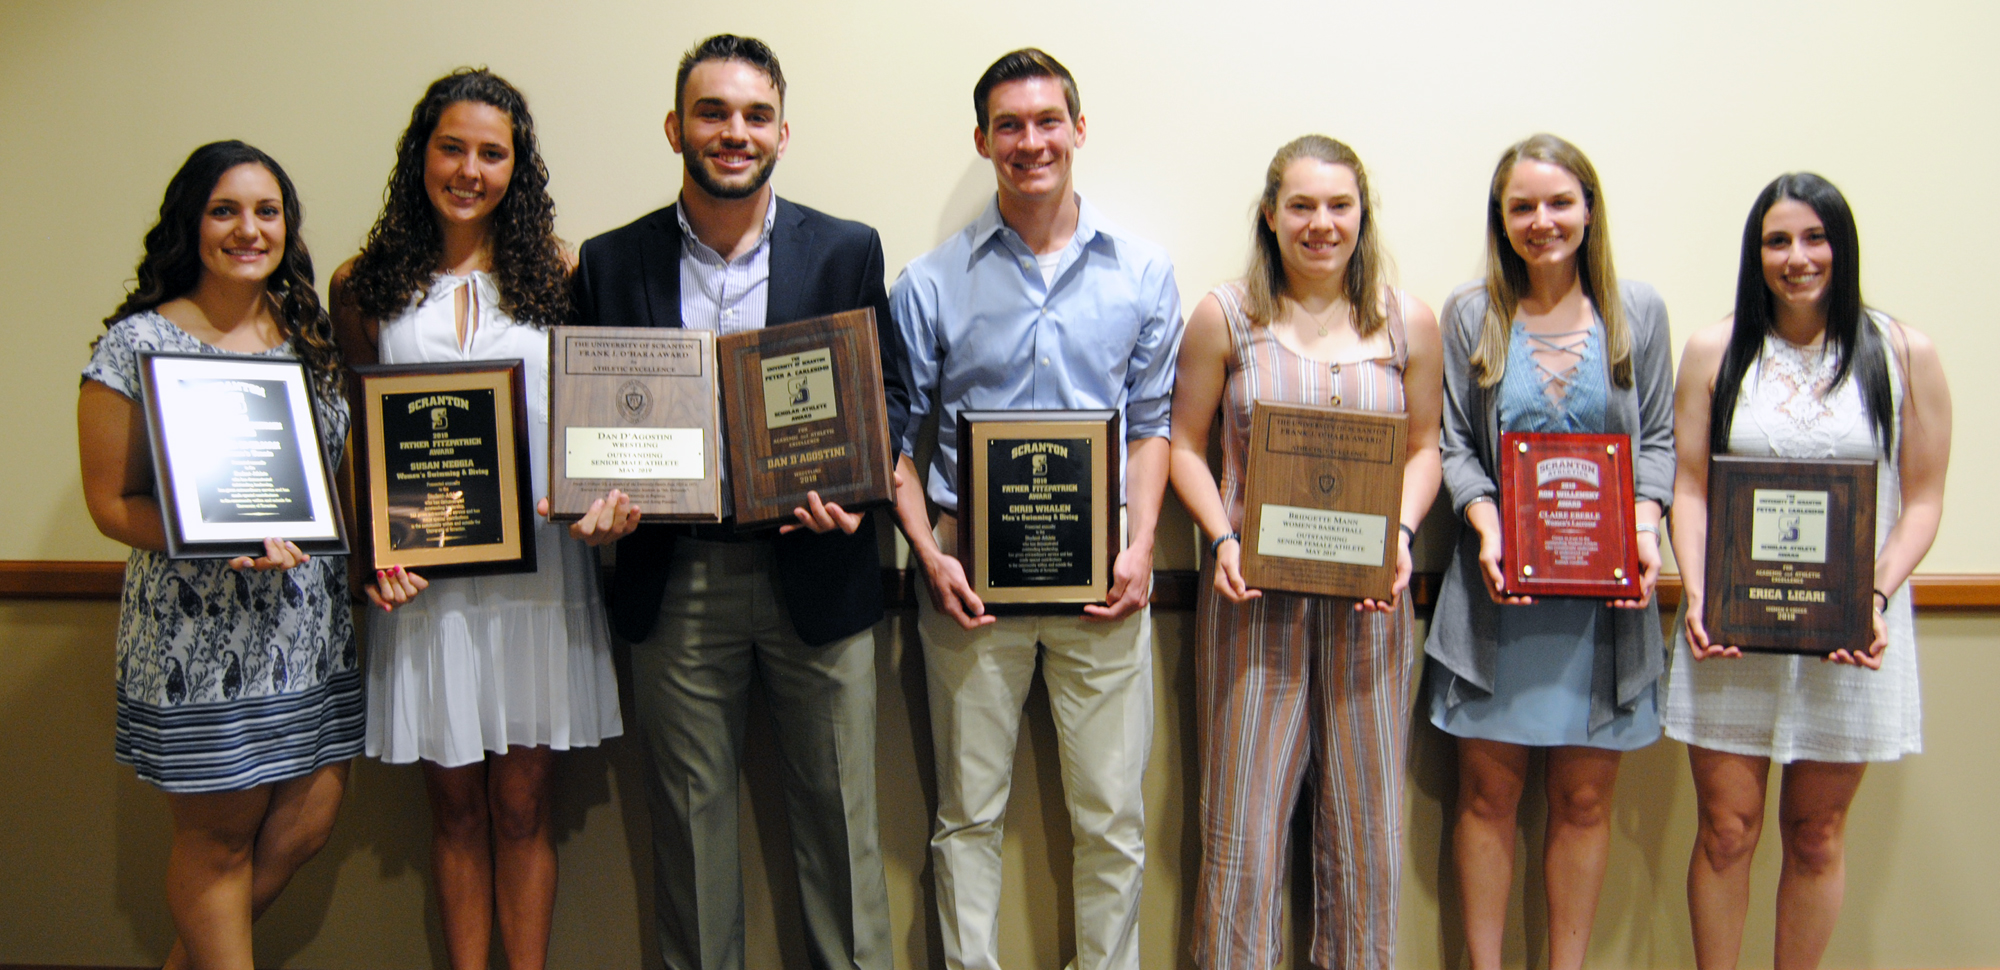 The major award winners from Saturday's 2019 Senior Student-Athlete Brunch (L to R); Elyse Smilnak (women's tennis), Susan Neggia (women's swimming & diving), Dan D'Agostini (wrestling), Chris Whalen (men's swimming & diving), Bridgette Mann (women's basketball), Claire Eberle (women's lacrosse), and Erica Licari (women's soccer).